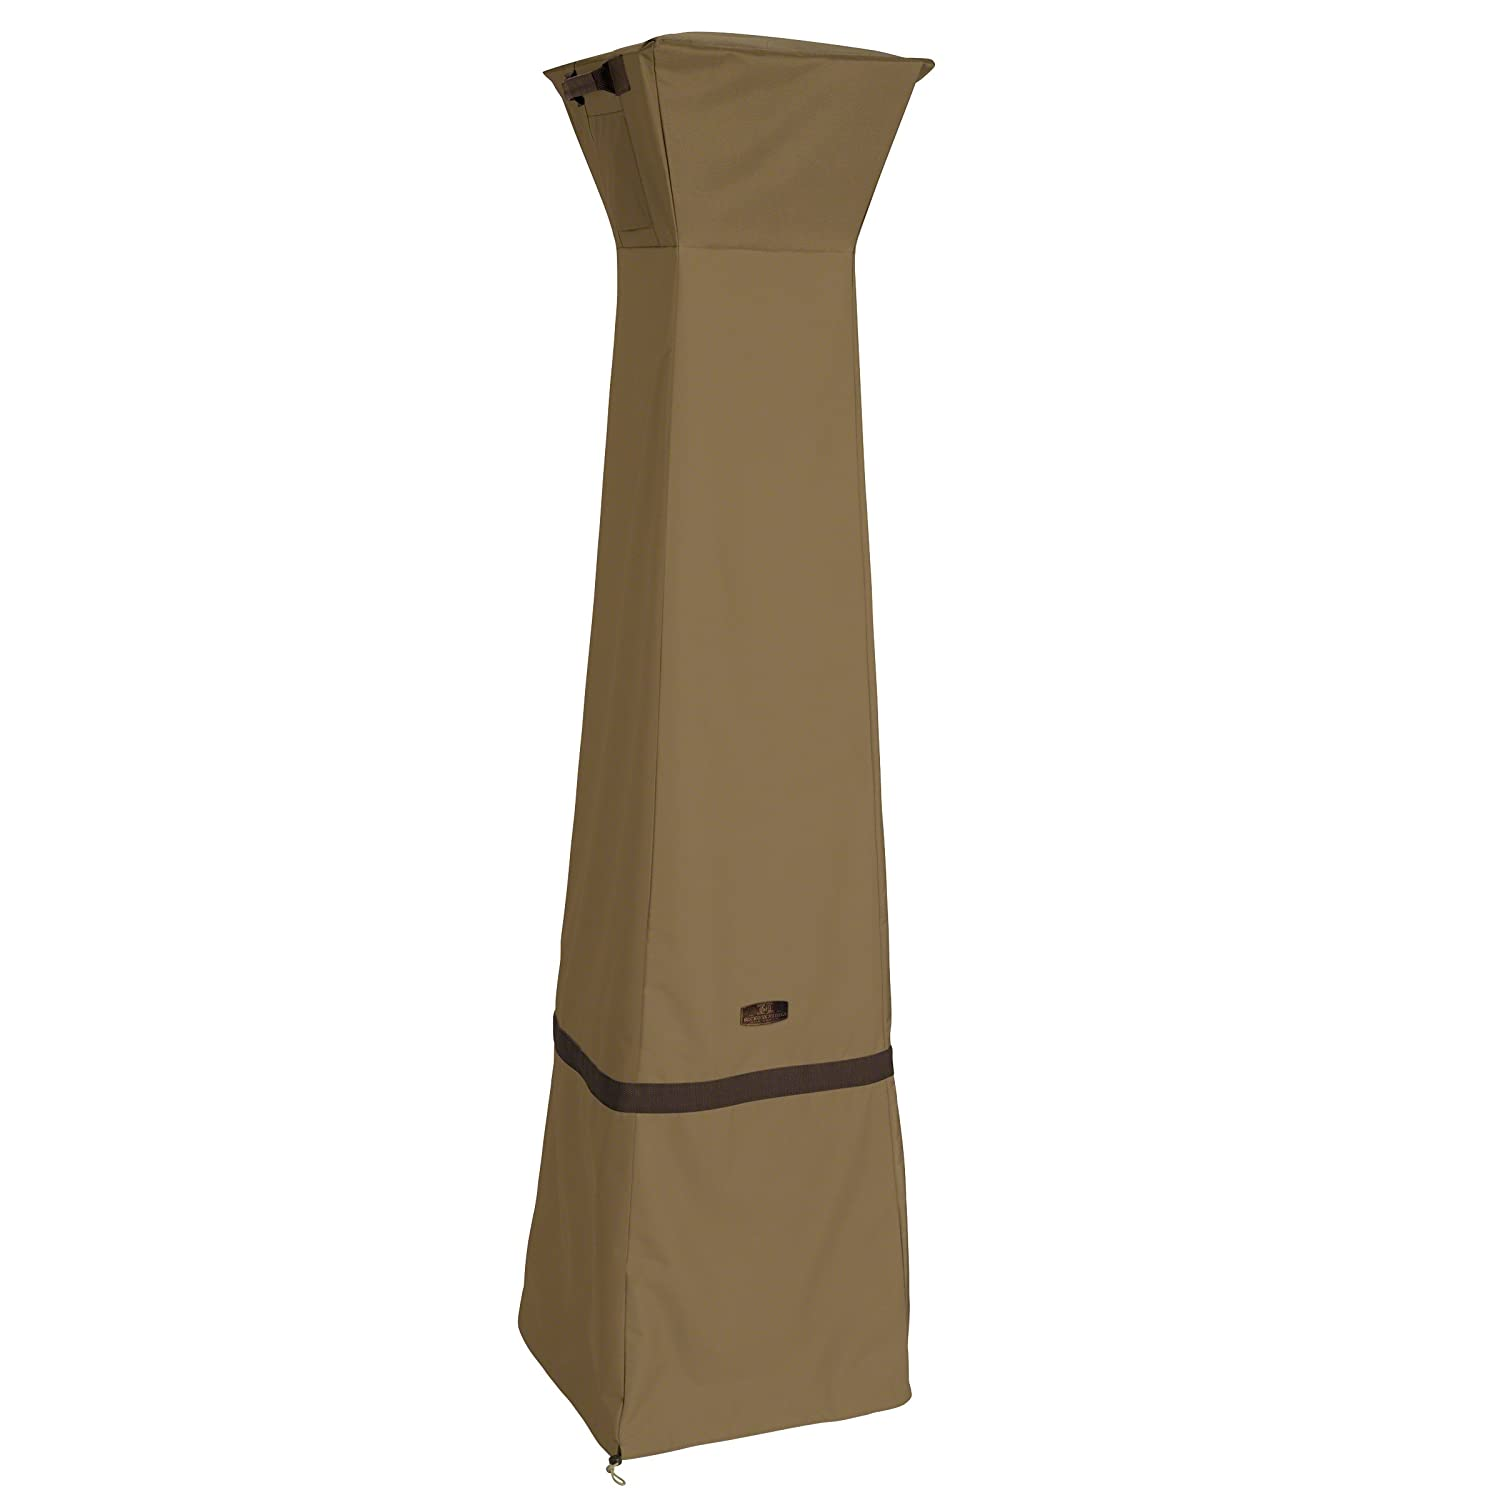 Classic Accessories Hickory Heavy Duty Pyramid Torch Patio Heater Cover-Durable and Water Resistant Patio Cover (55-336-012401-EC) 52963019629